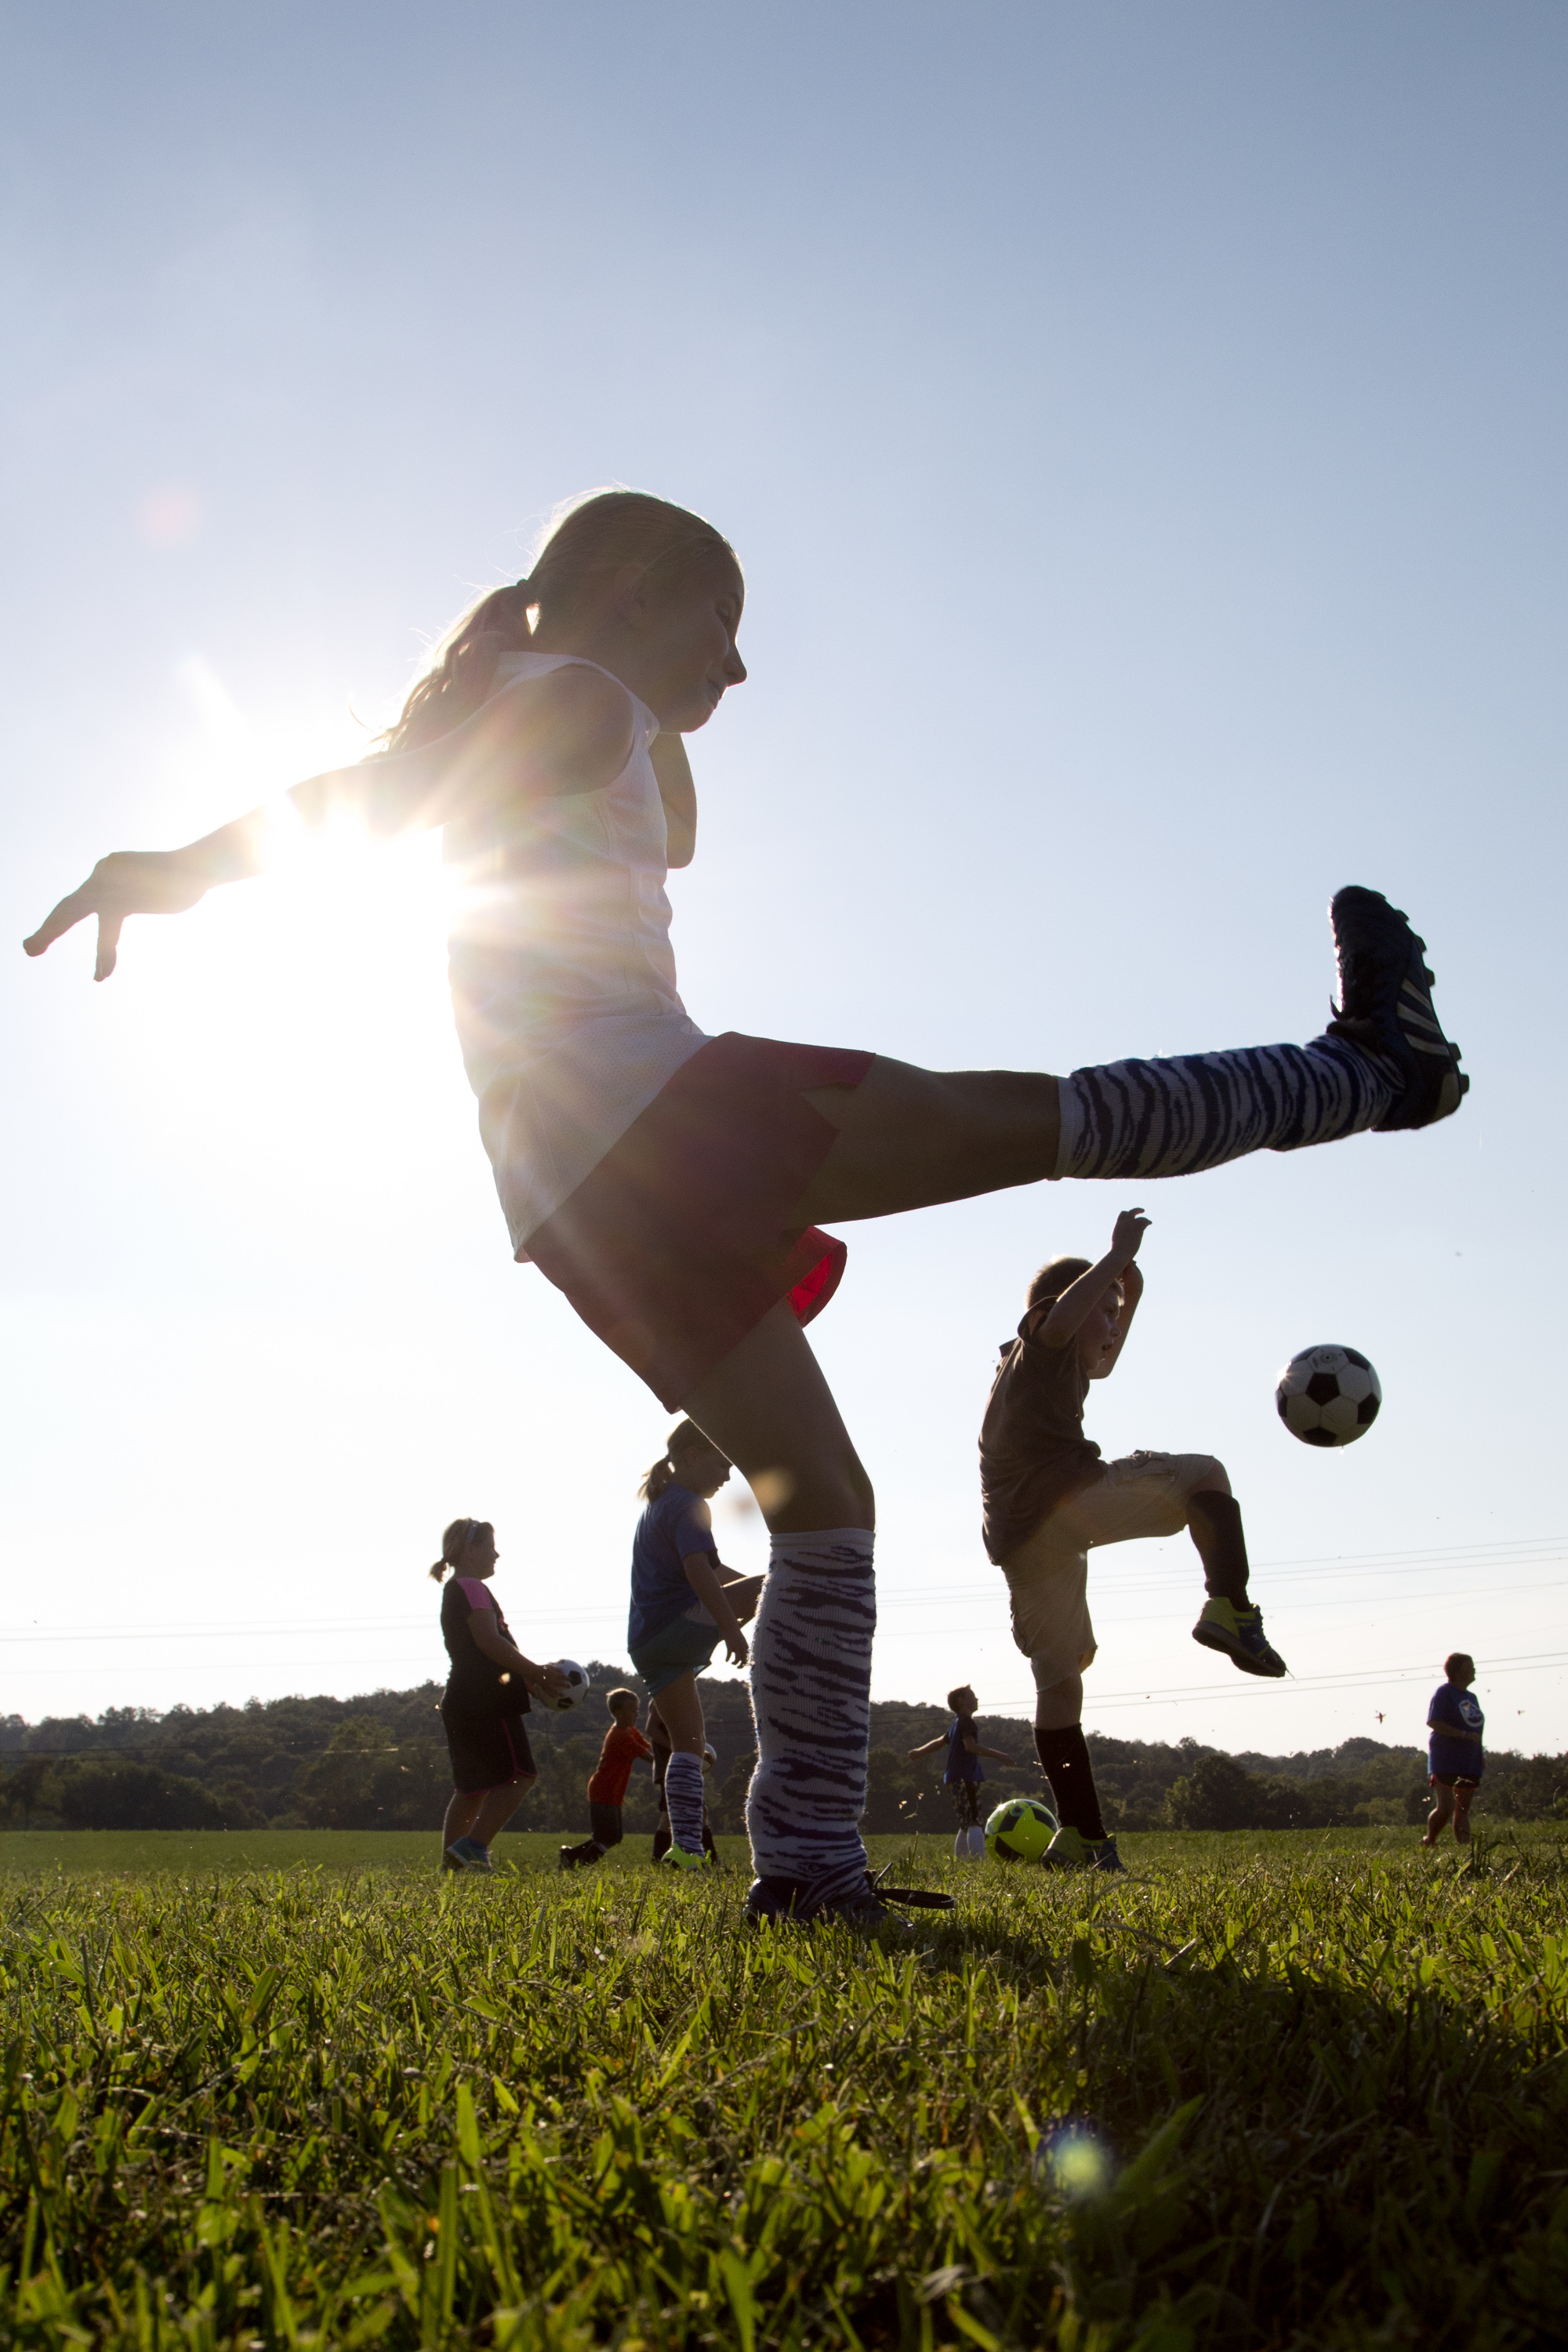 Cassidy Riecker of Celestine, 10, front center, and Elijah Kerby of Nicholson Valley, 9, right, practiced drop kicks with their Northeast Dubois Youth Soccer team, the Thunder, in Celestine on Tuesday.